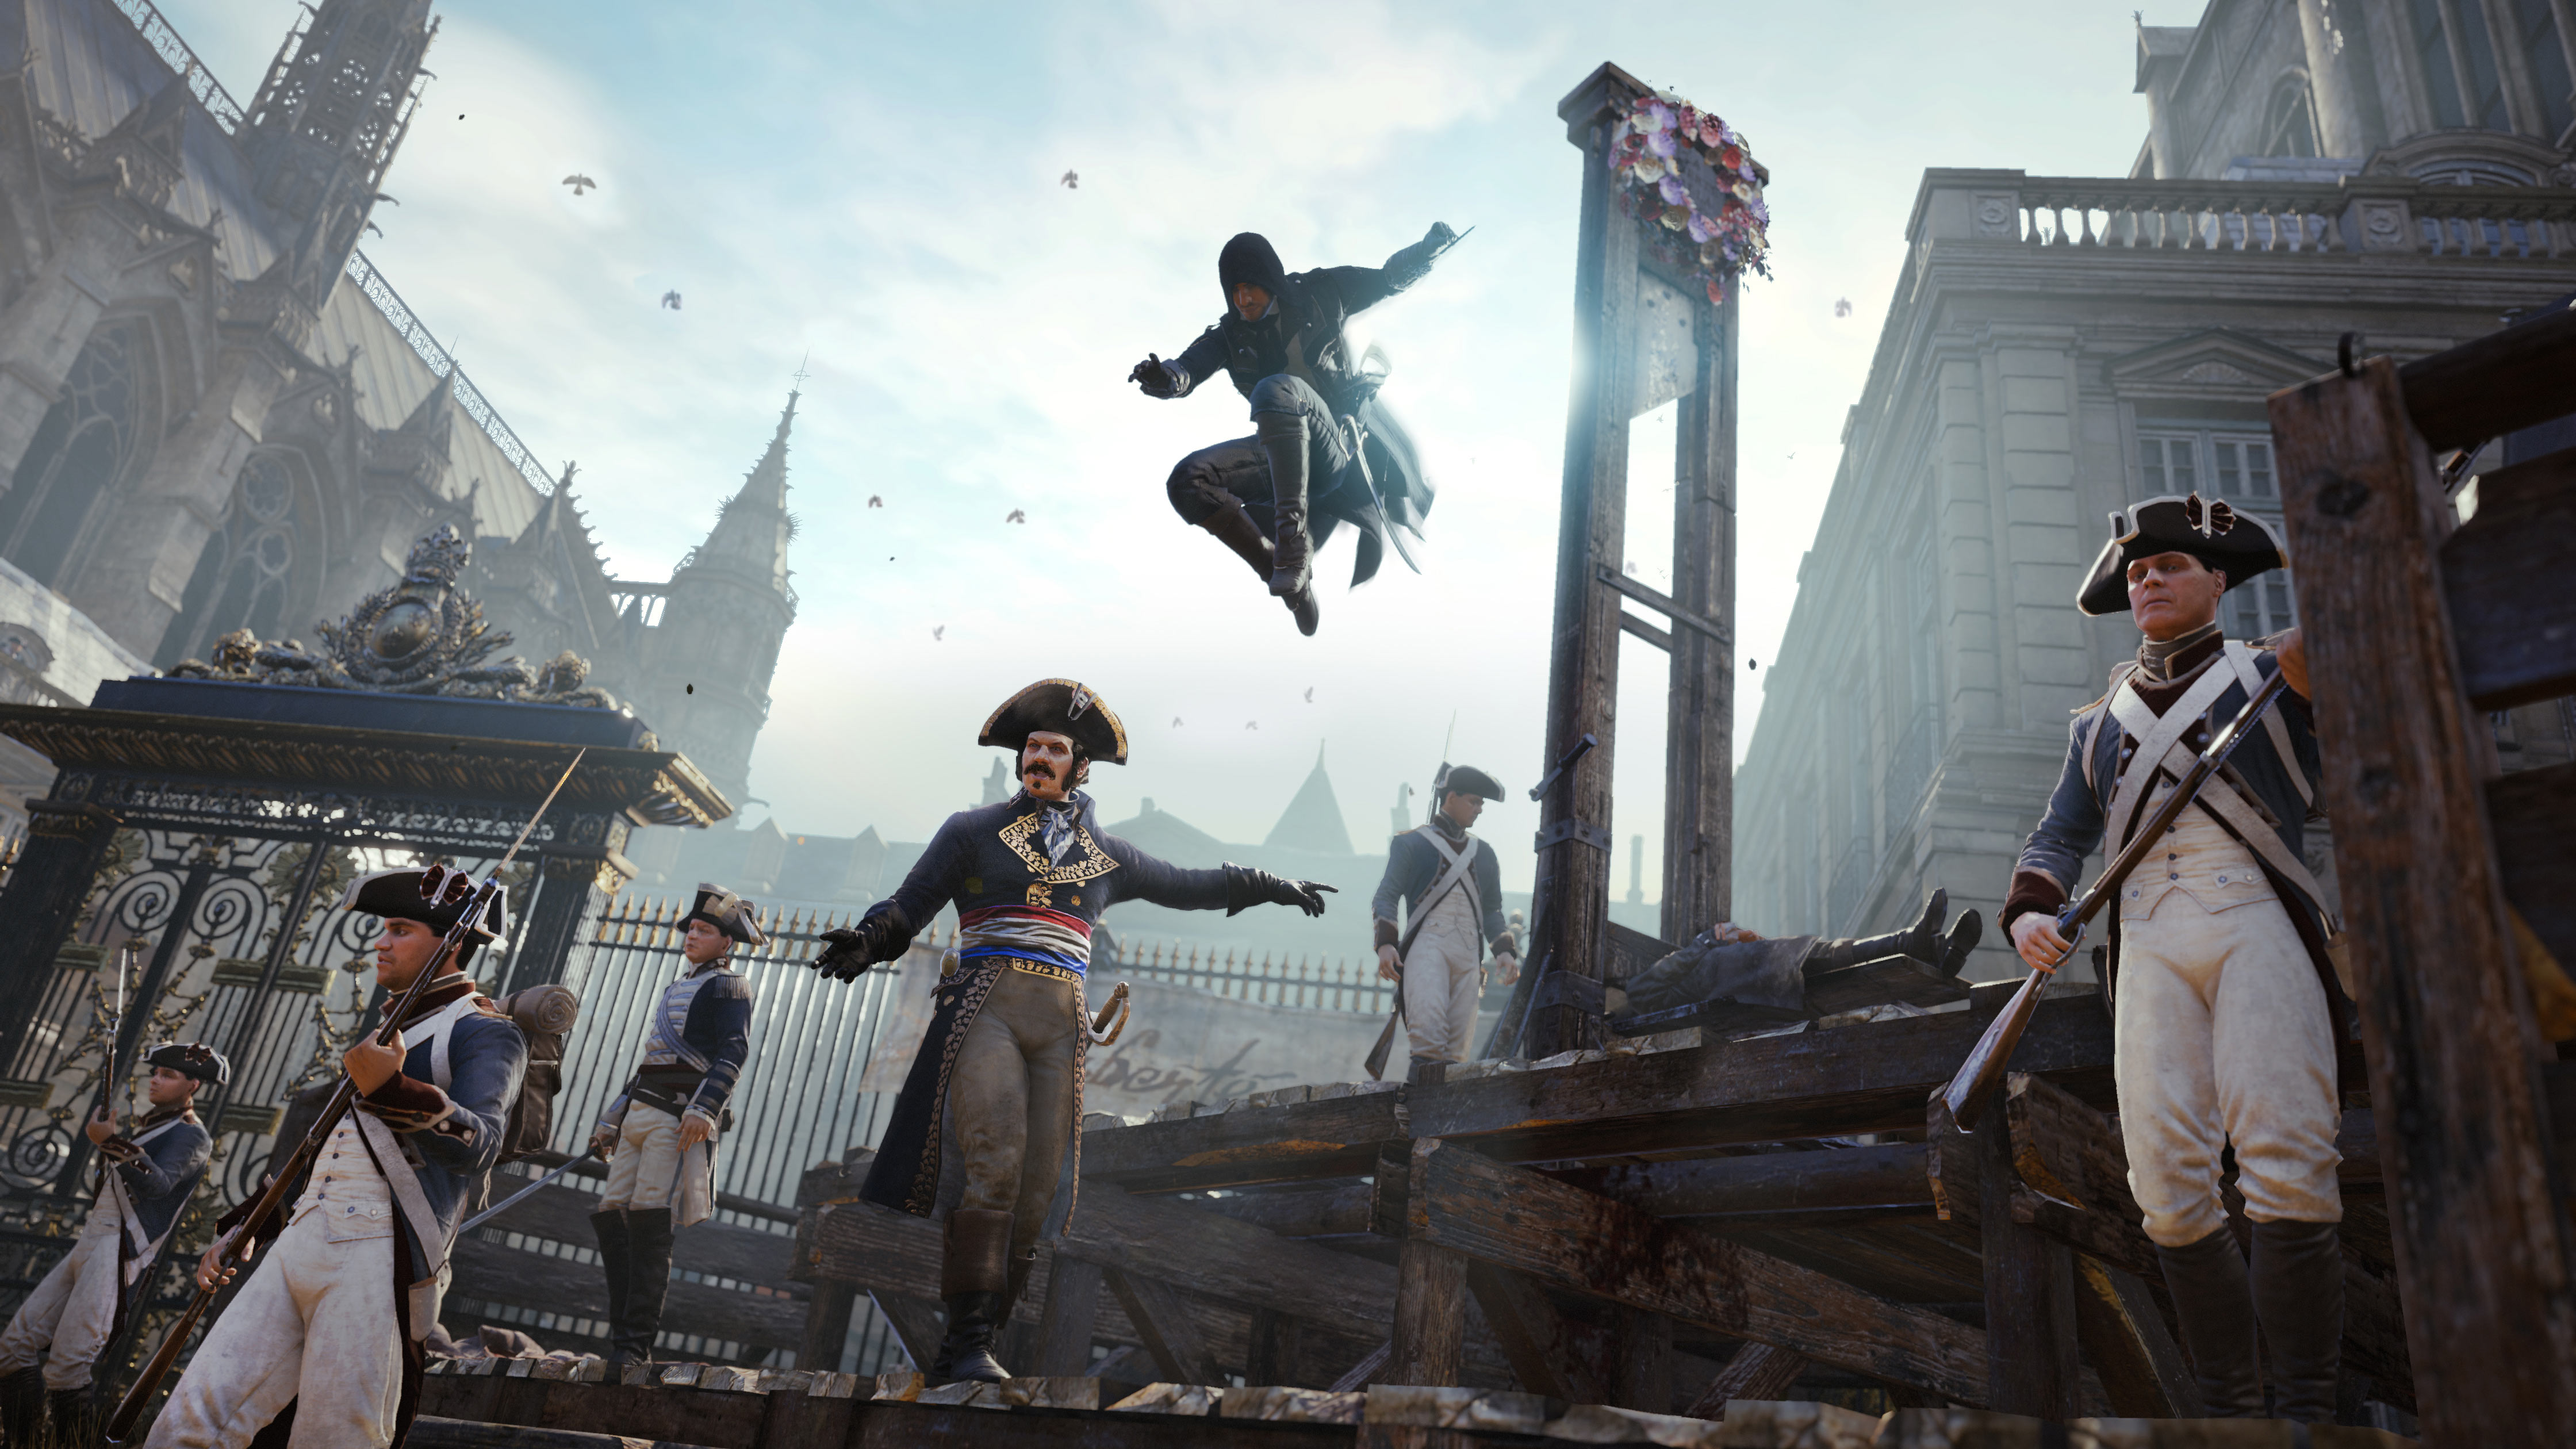 Assassin s creed unity review next available slot assassin s creed - Create Your Own Assassin For Ac Unity Win A Real Figurine Of Your Character Gamesradar